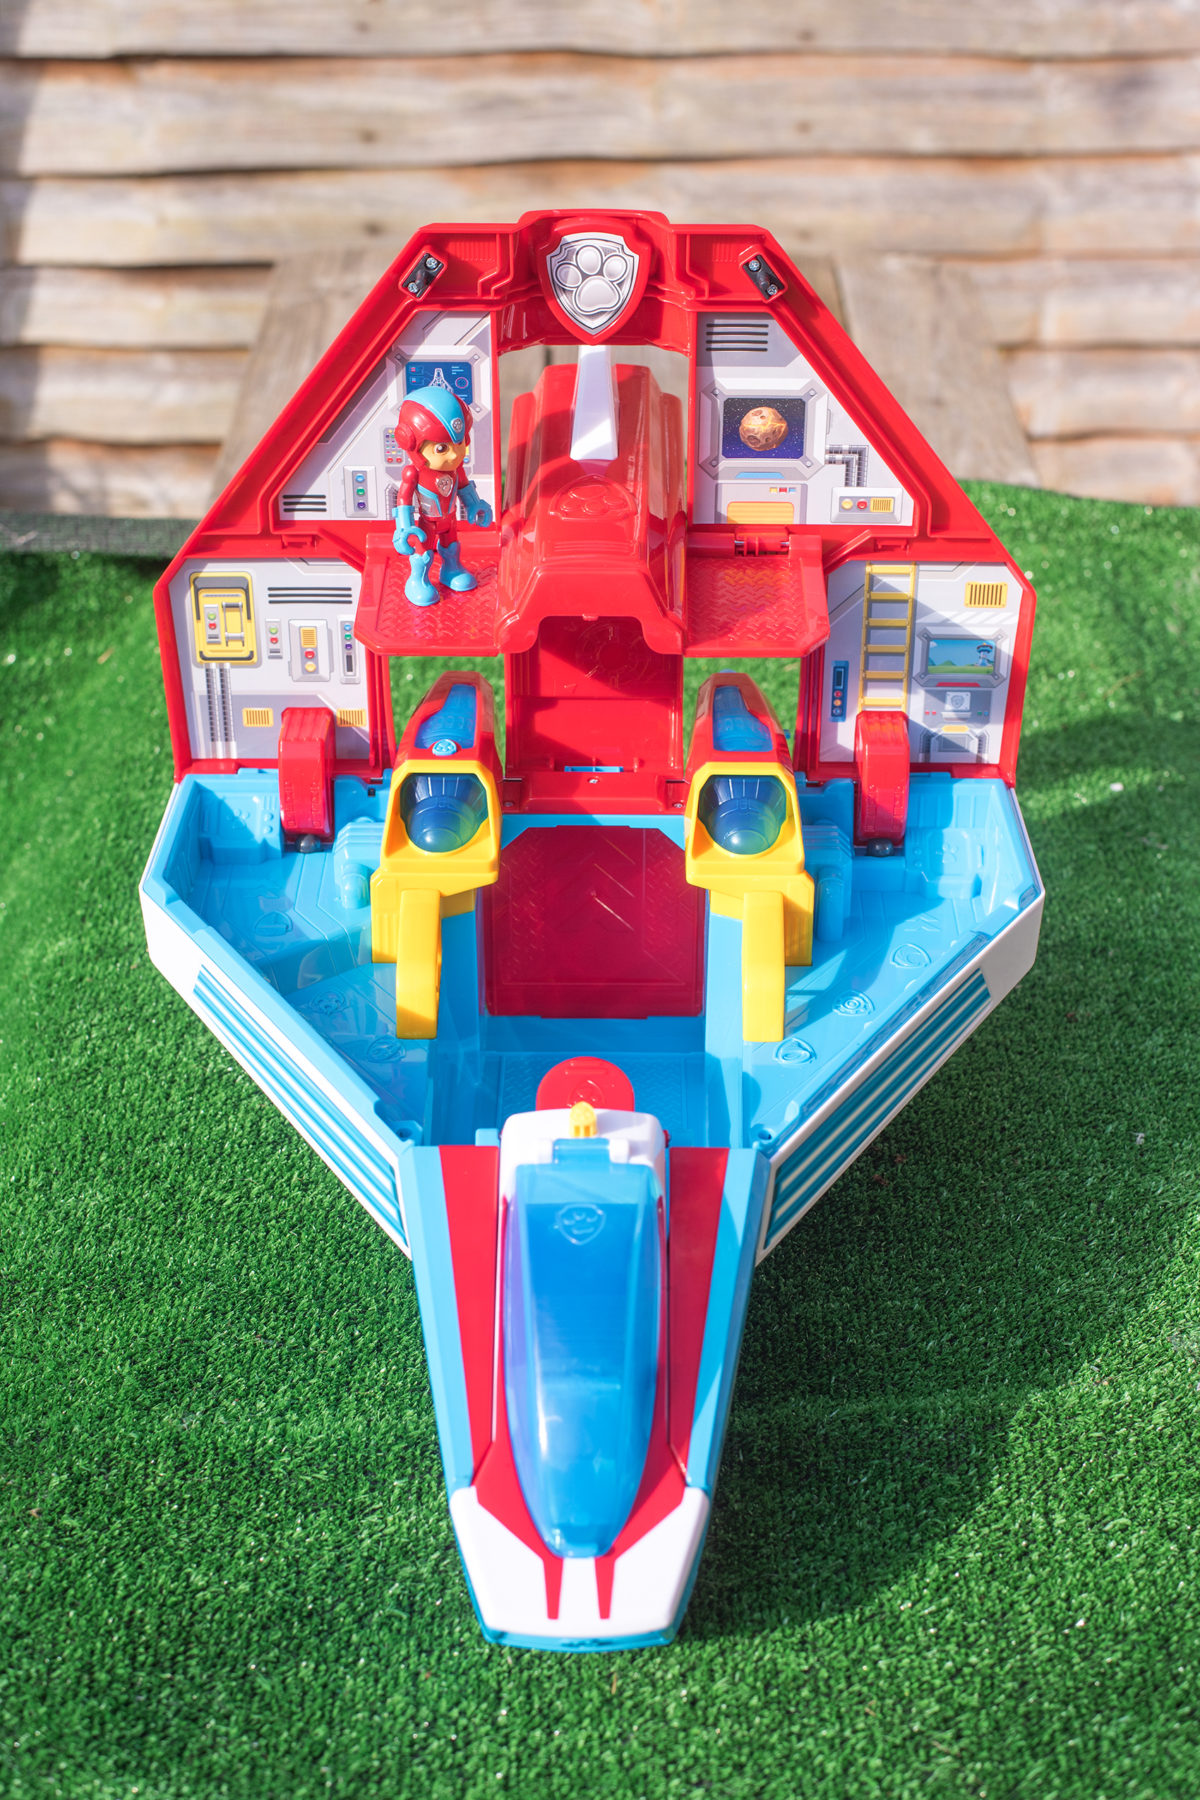 OPEN AND READY FOR PLAY - THE PAW PATROL MIGHTY JET COMMAND CENTRE